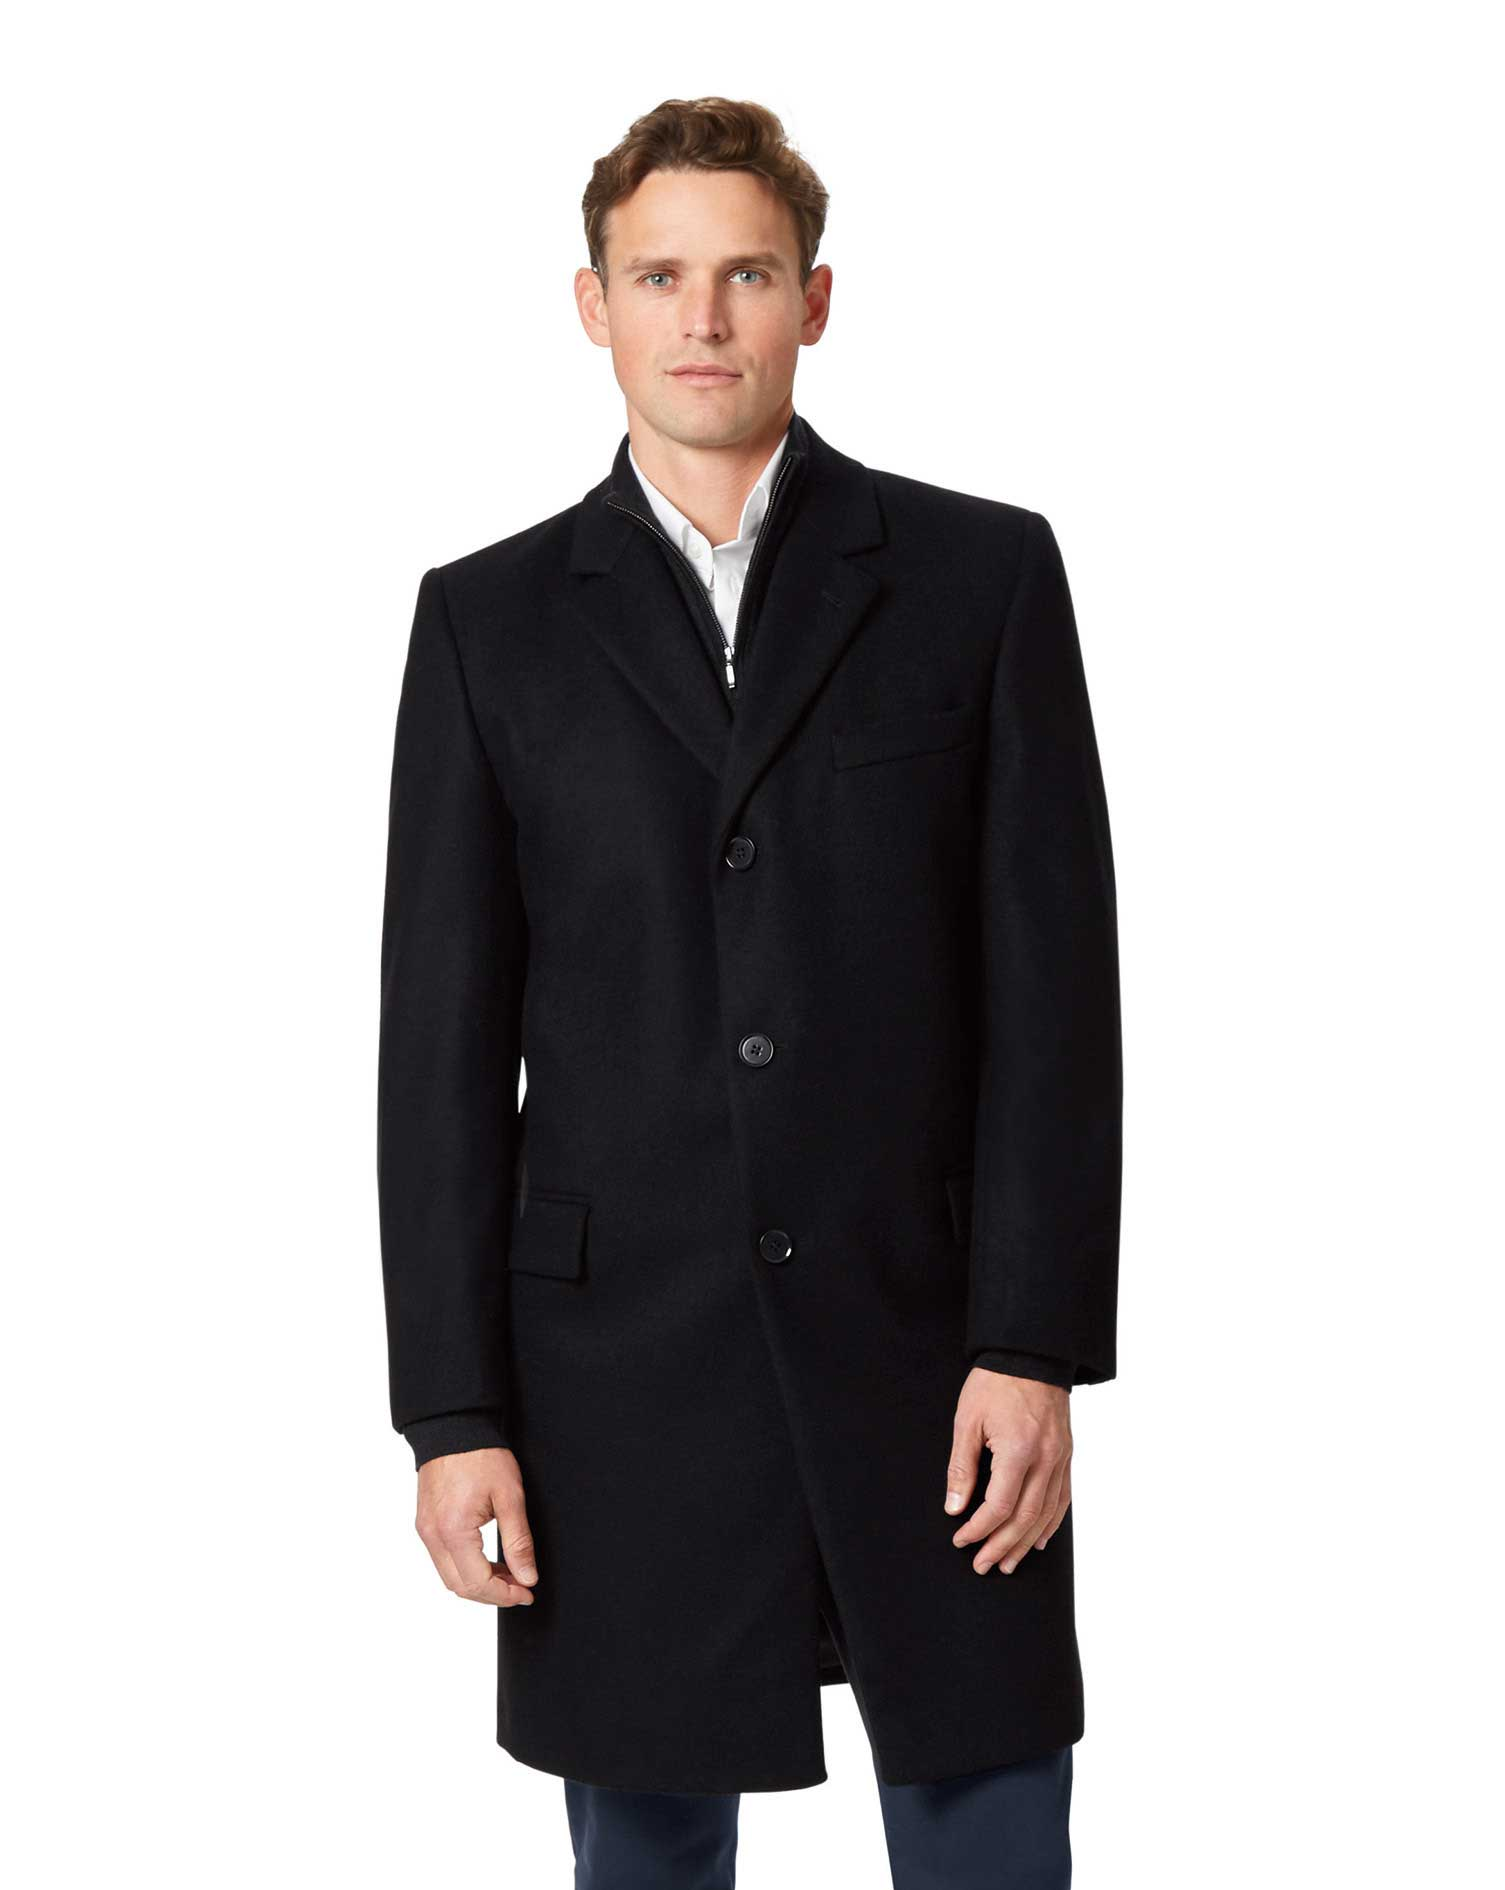 Black Wool and Cashmere Overcoat Size 40 Long by Charles Tyrwhitt